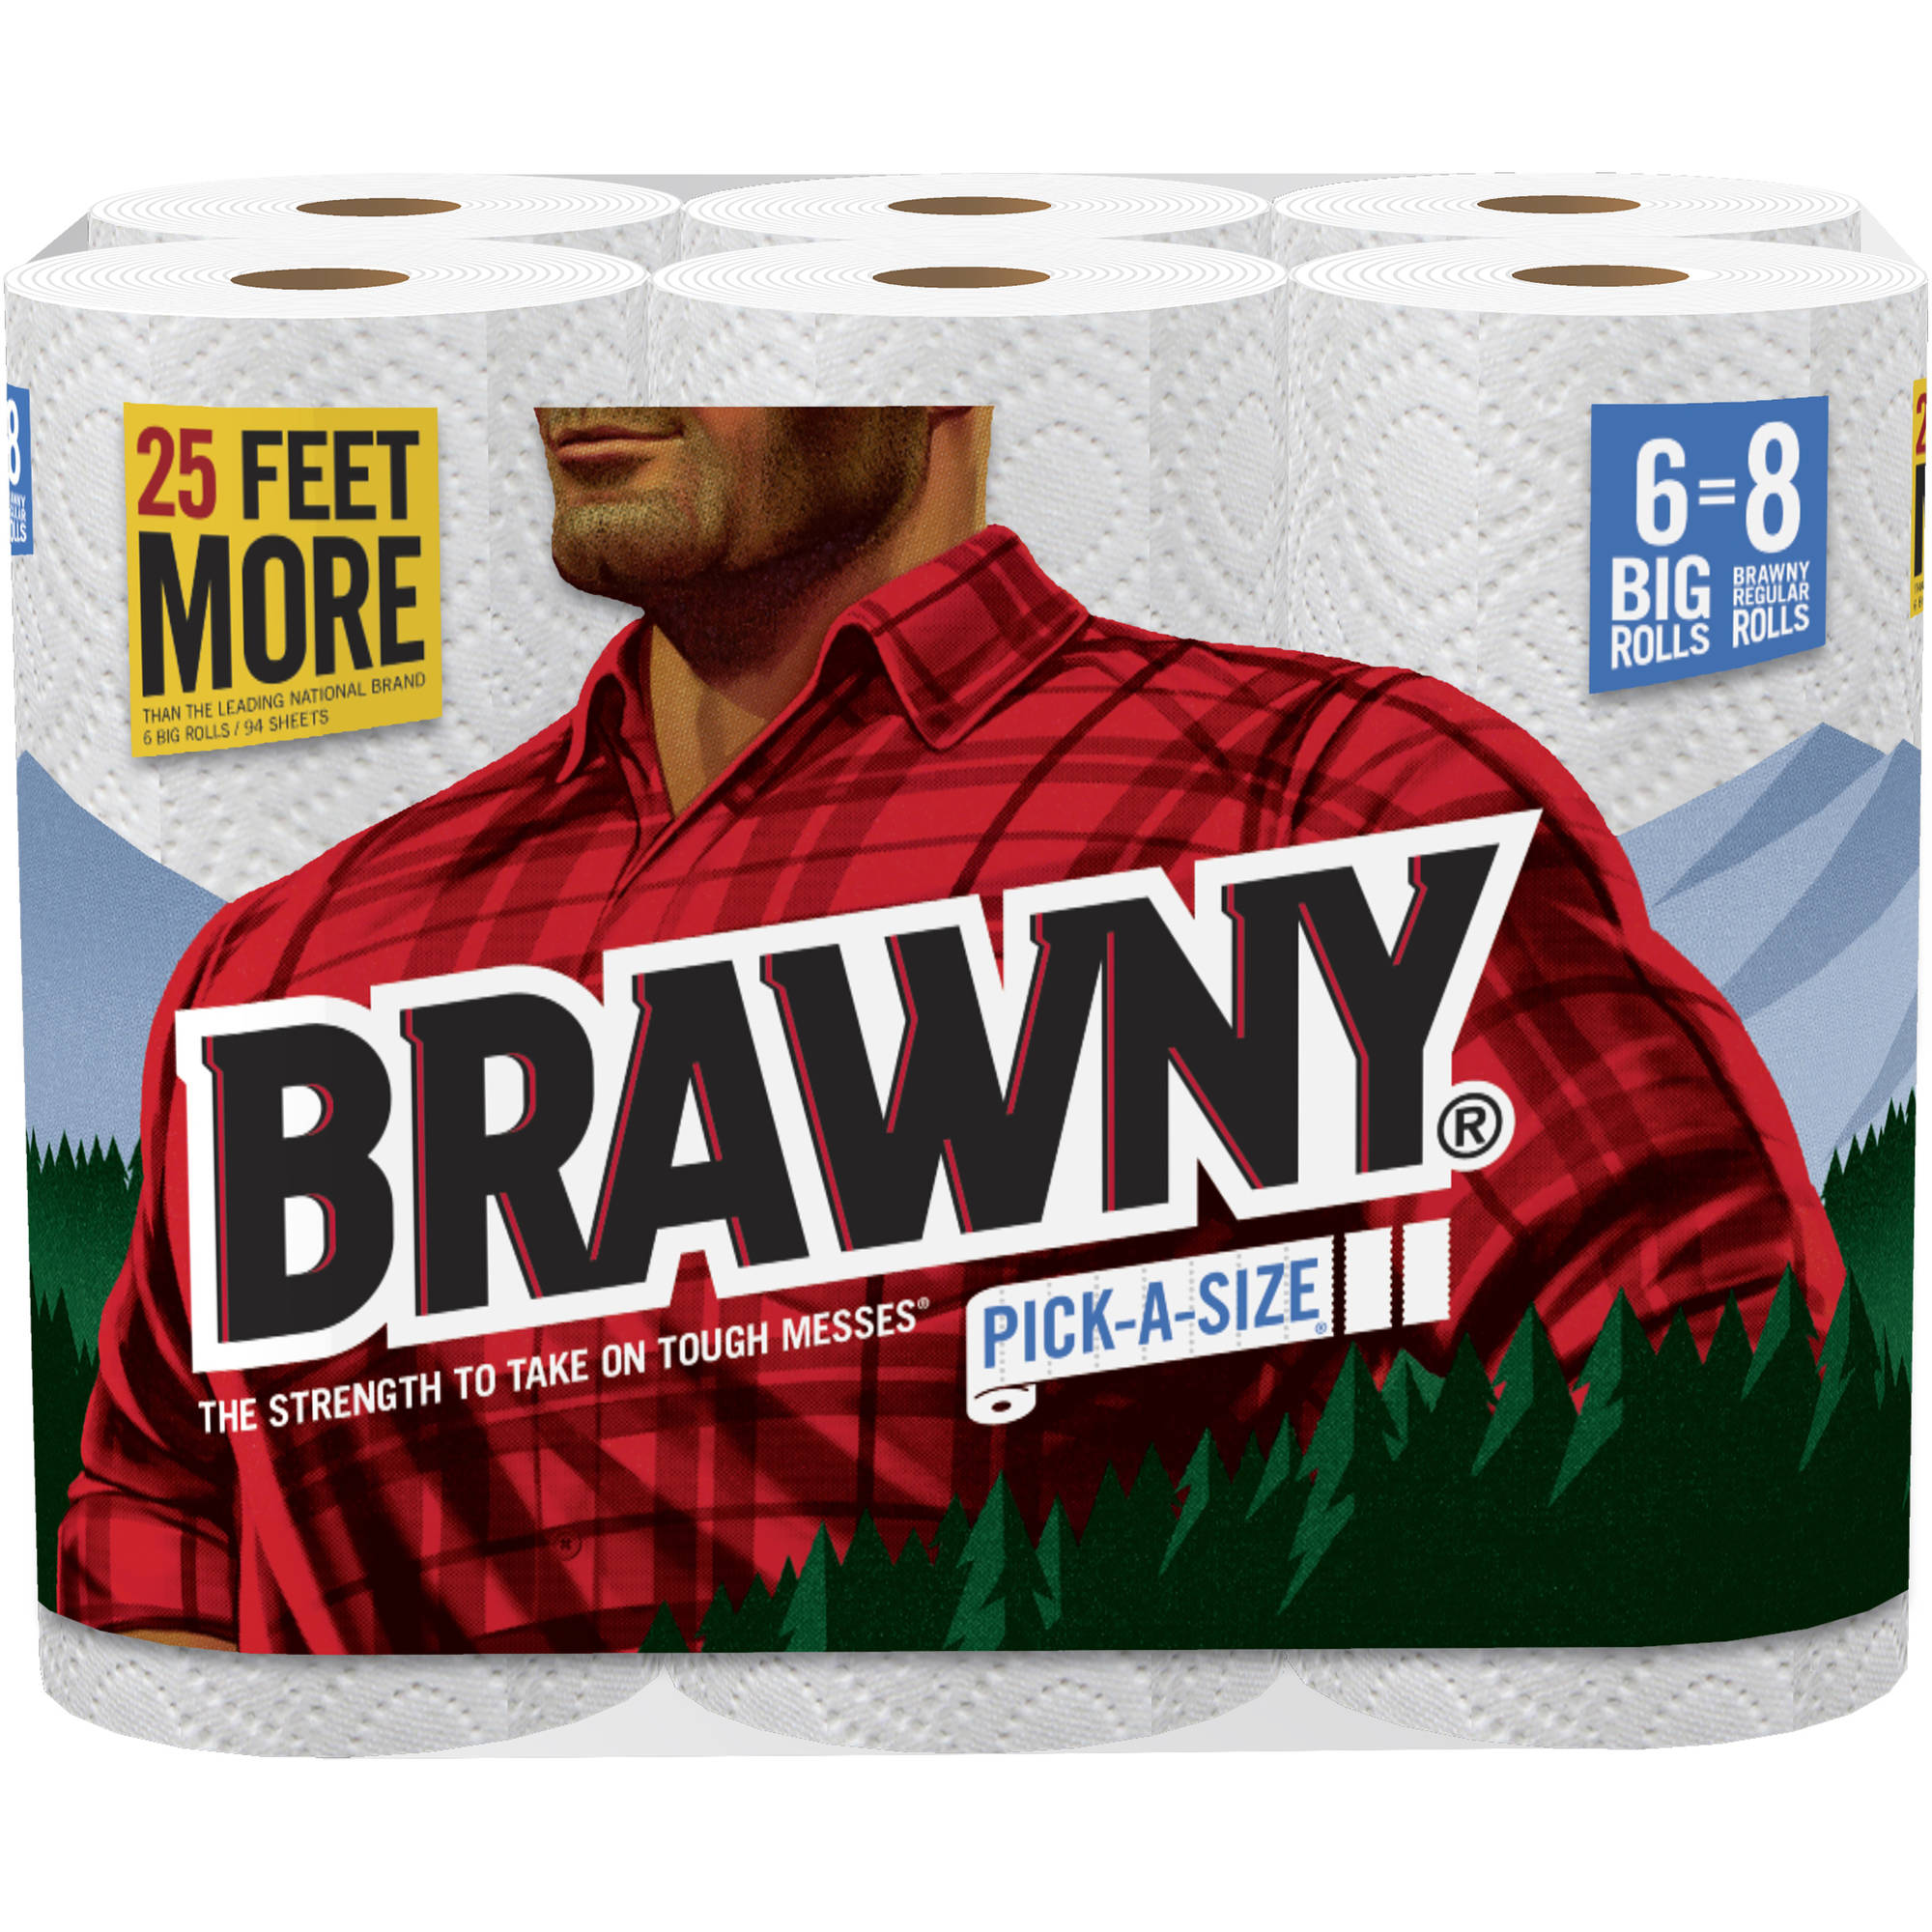 Brawny Pick-a-Size Big Roll Paper Towels, 104 sheets, 6 rolls